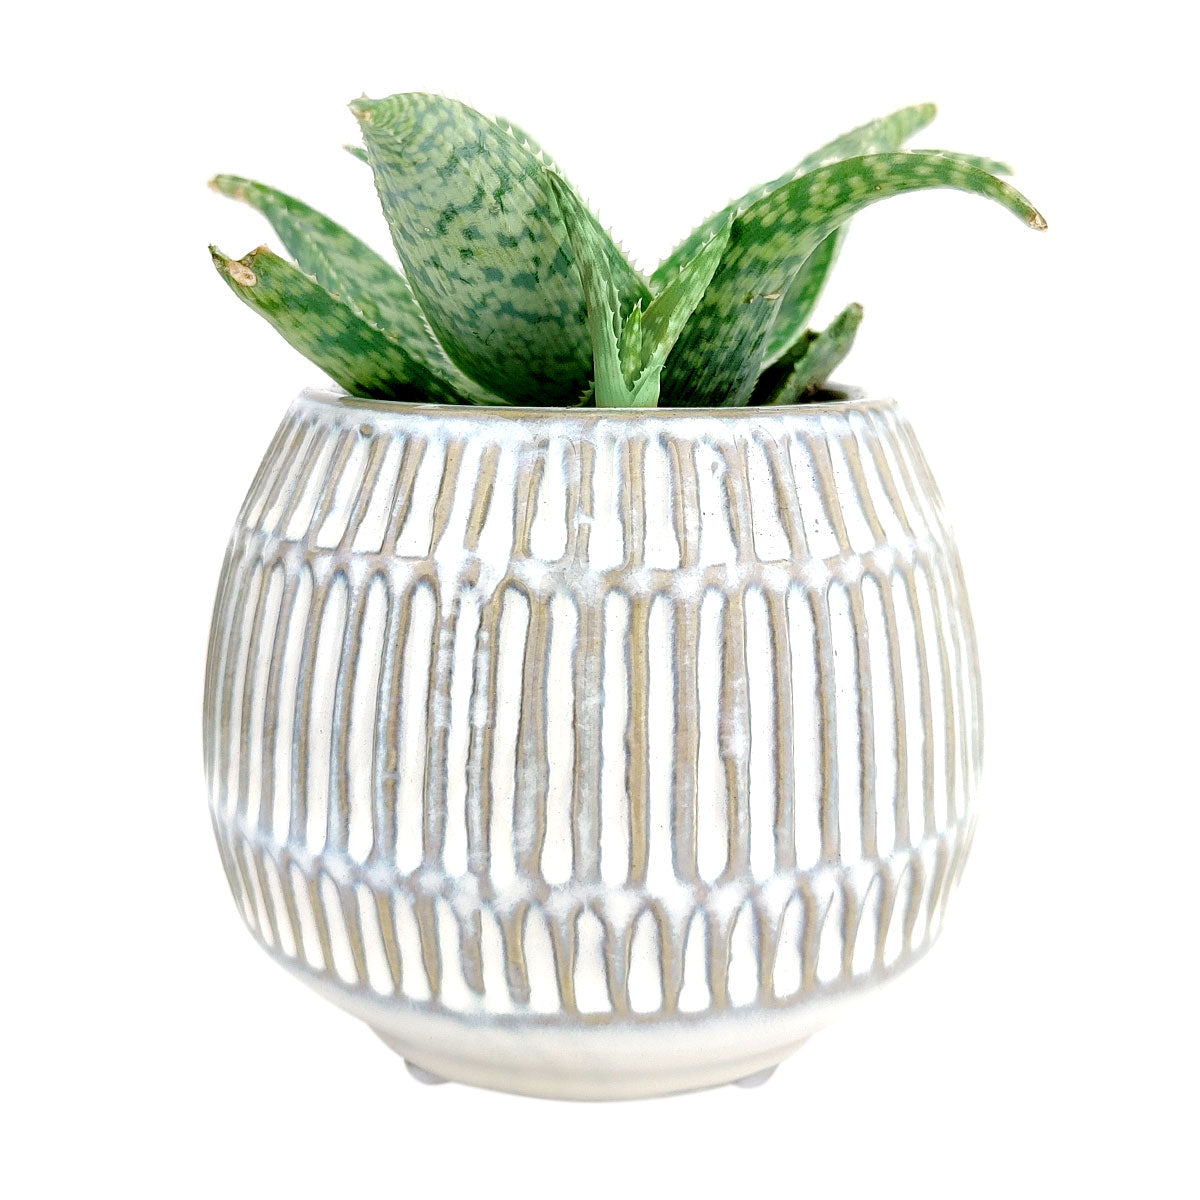 Round Texture Cream Pot for sale, White Ceramic Textured Planter Pot, Small ceramic pot for succulents and cacti, succulent home office decor ideas